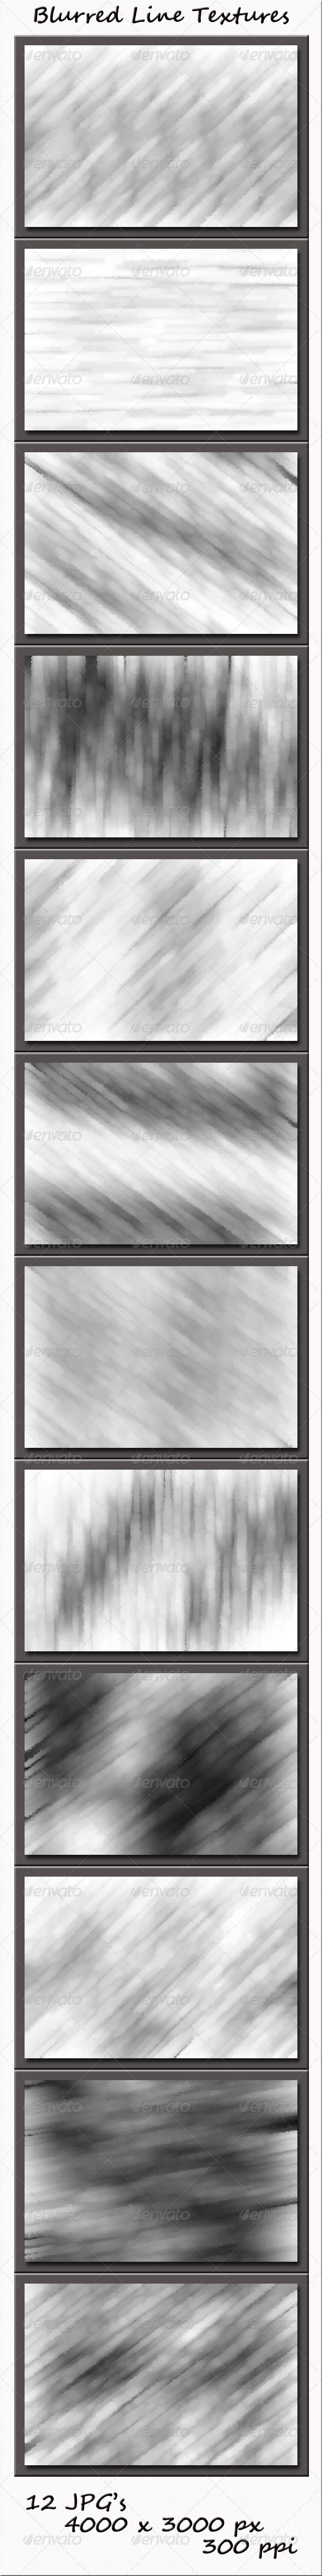 GraphicRiver Blurred Line Textures 5909749